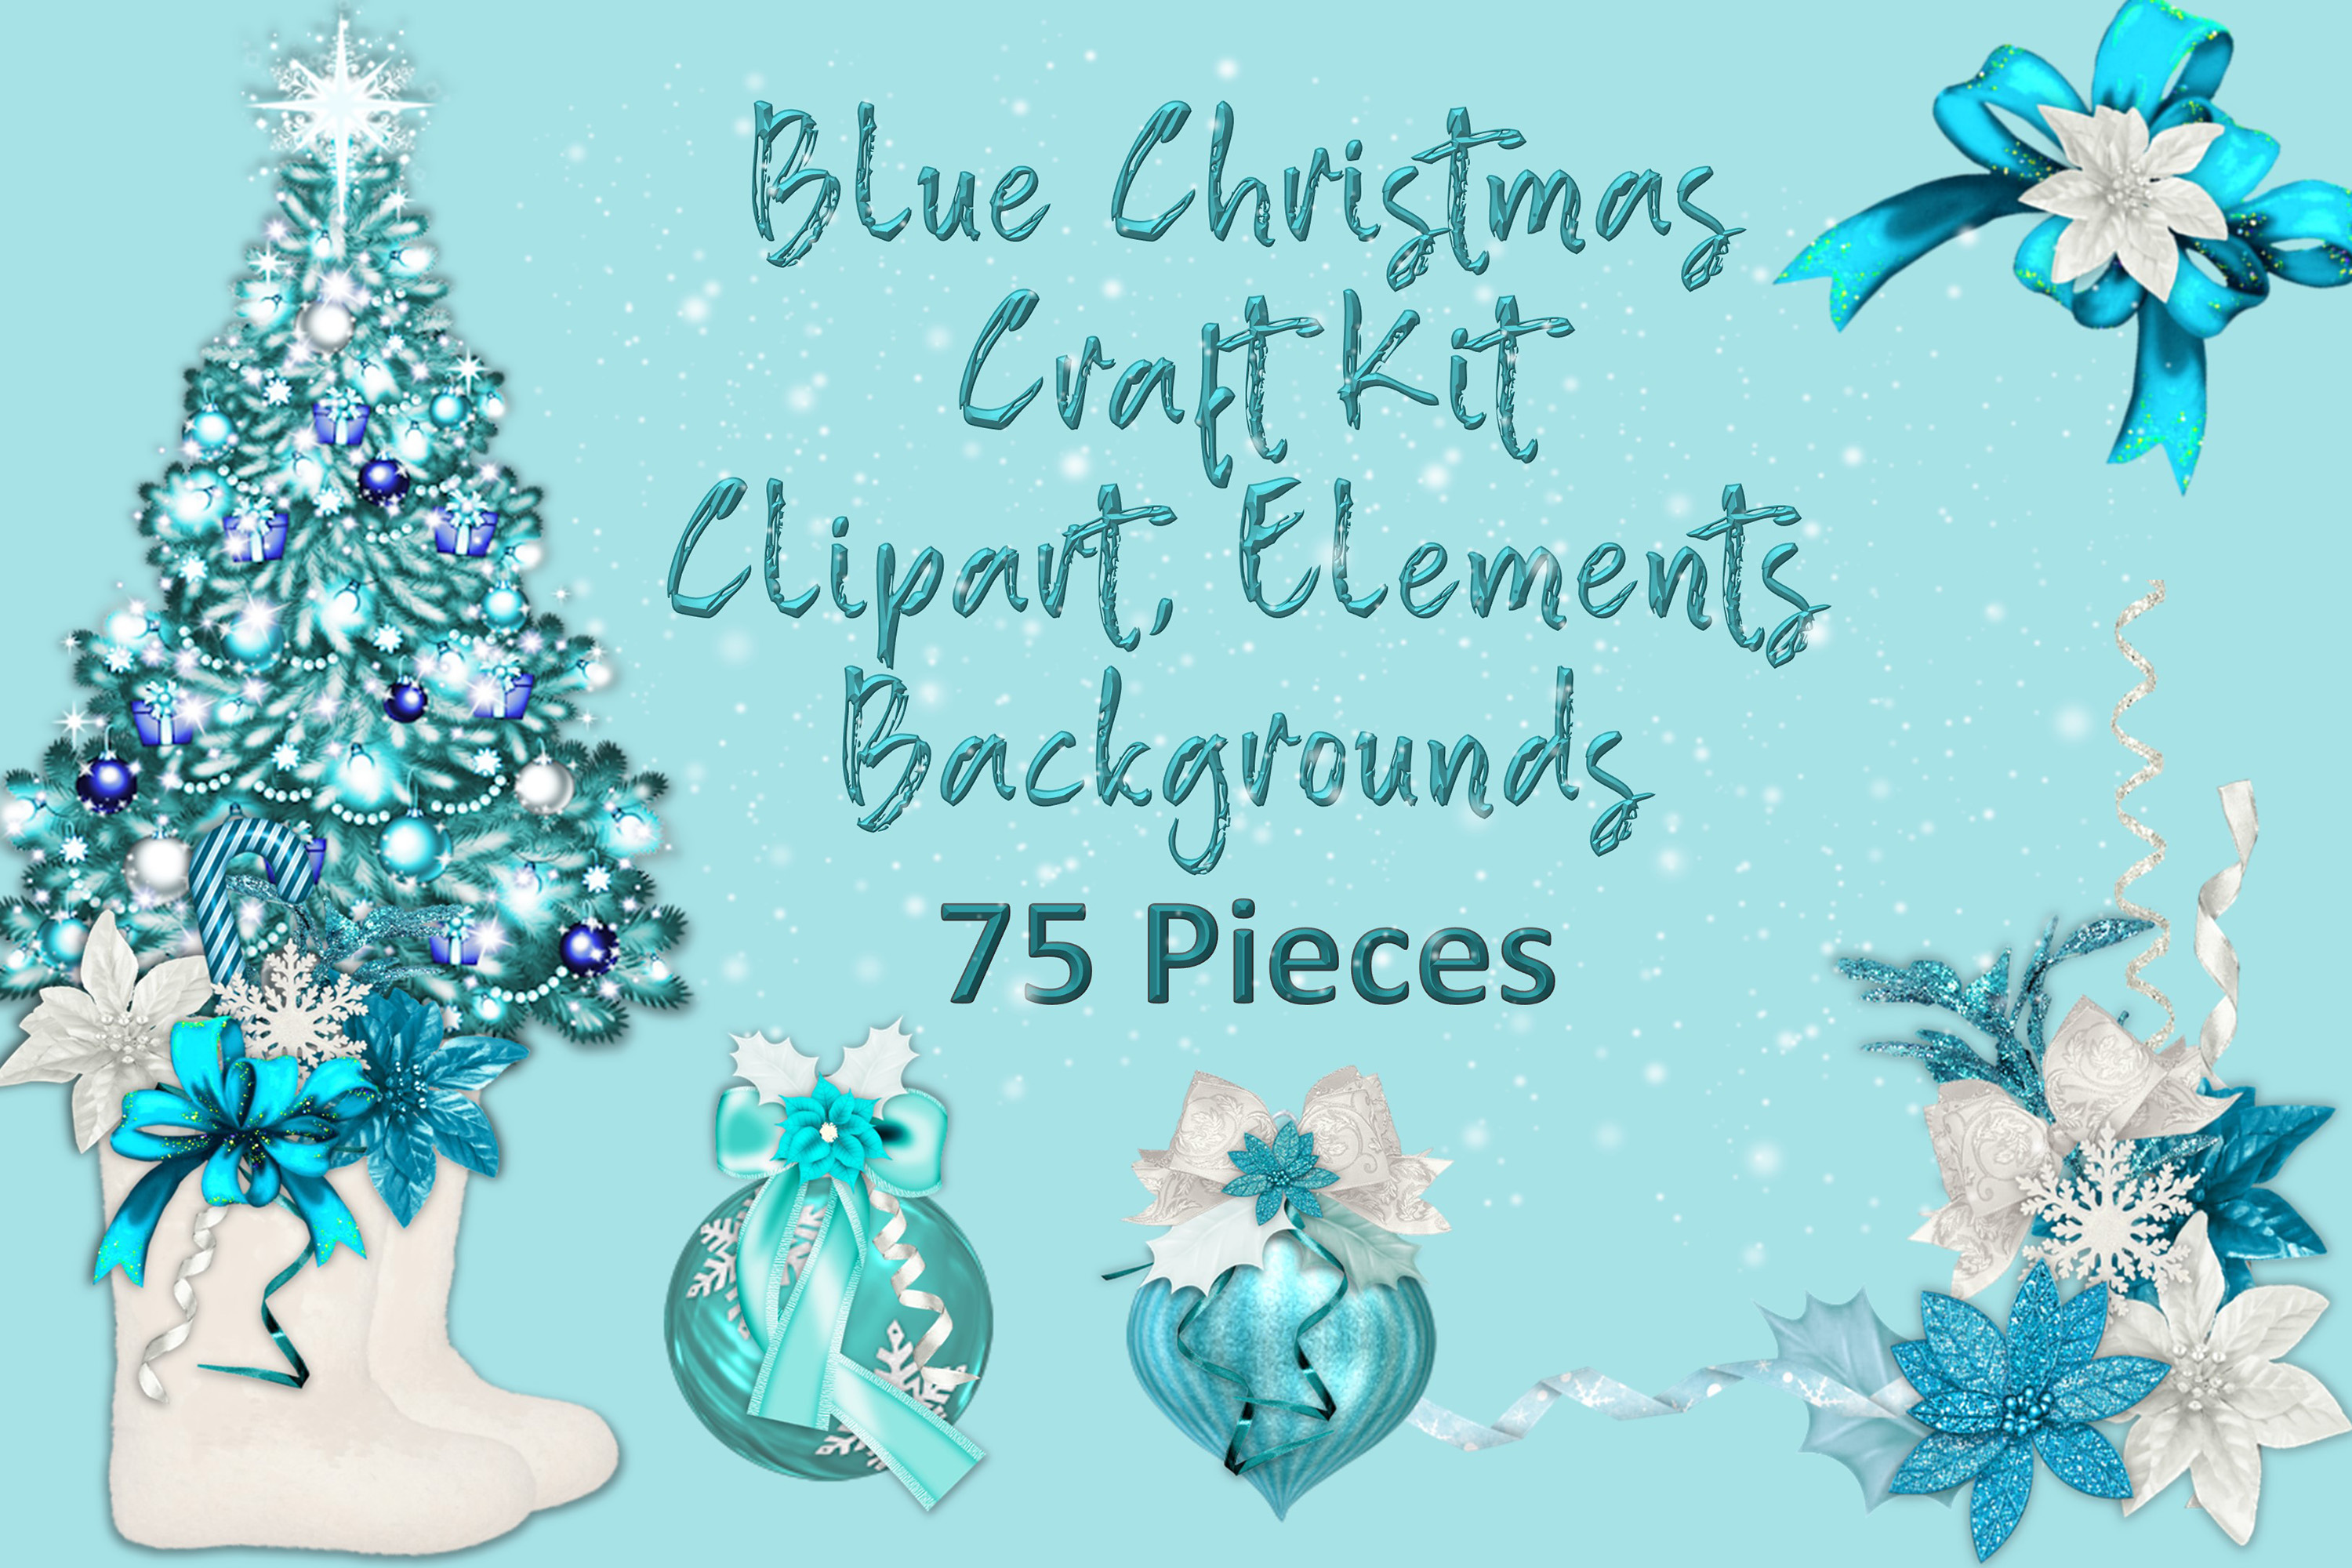 Download Free Blue Christmas Clip Art And Backgrounds Graphic By The Paper for Cricut Explore, Silhouette and other cutting machines.